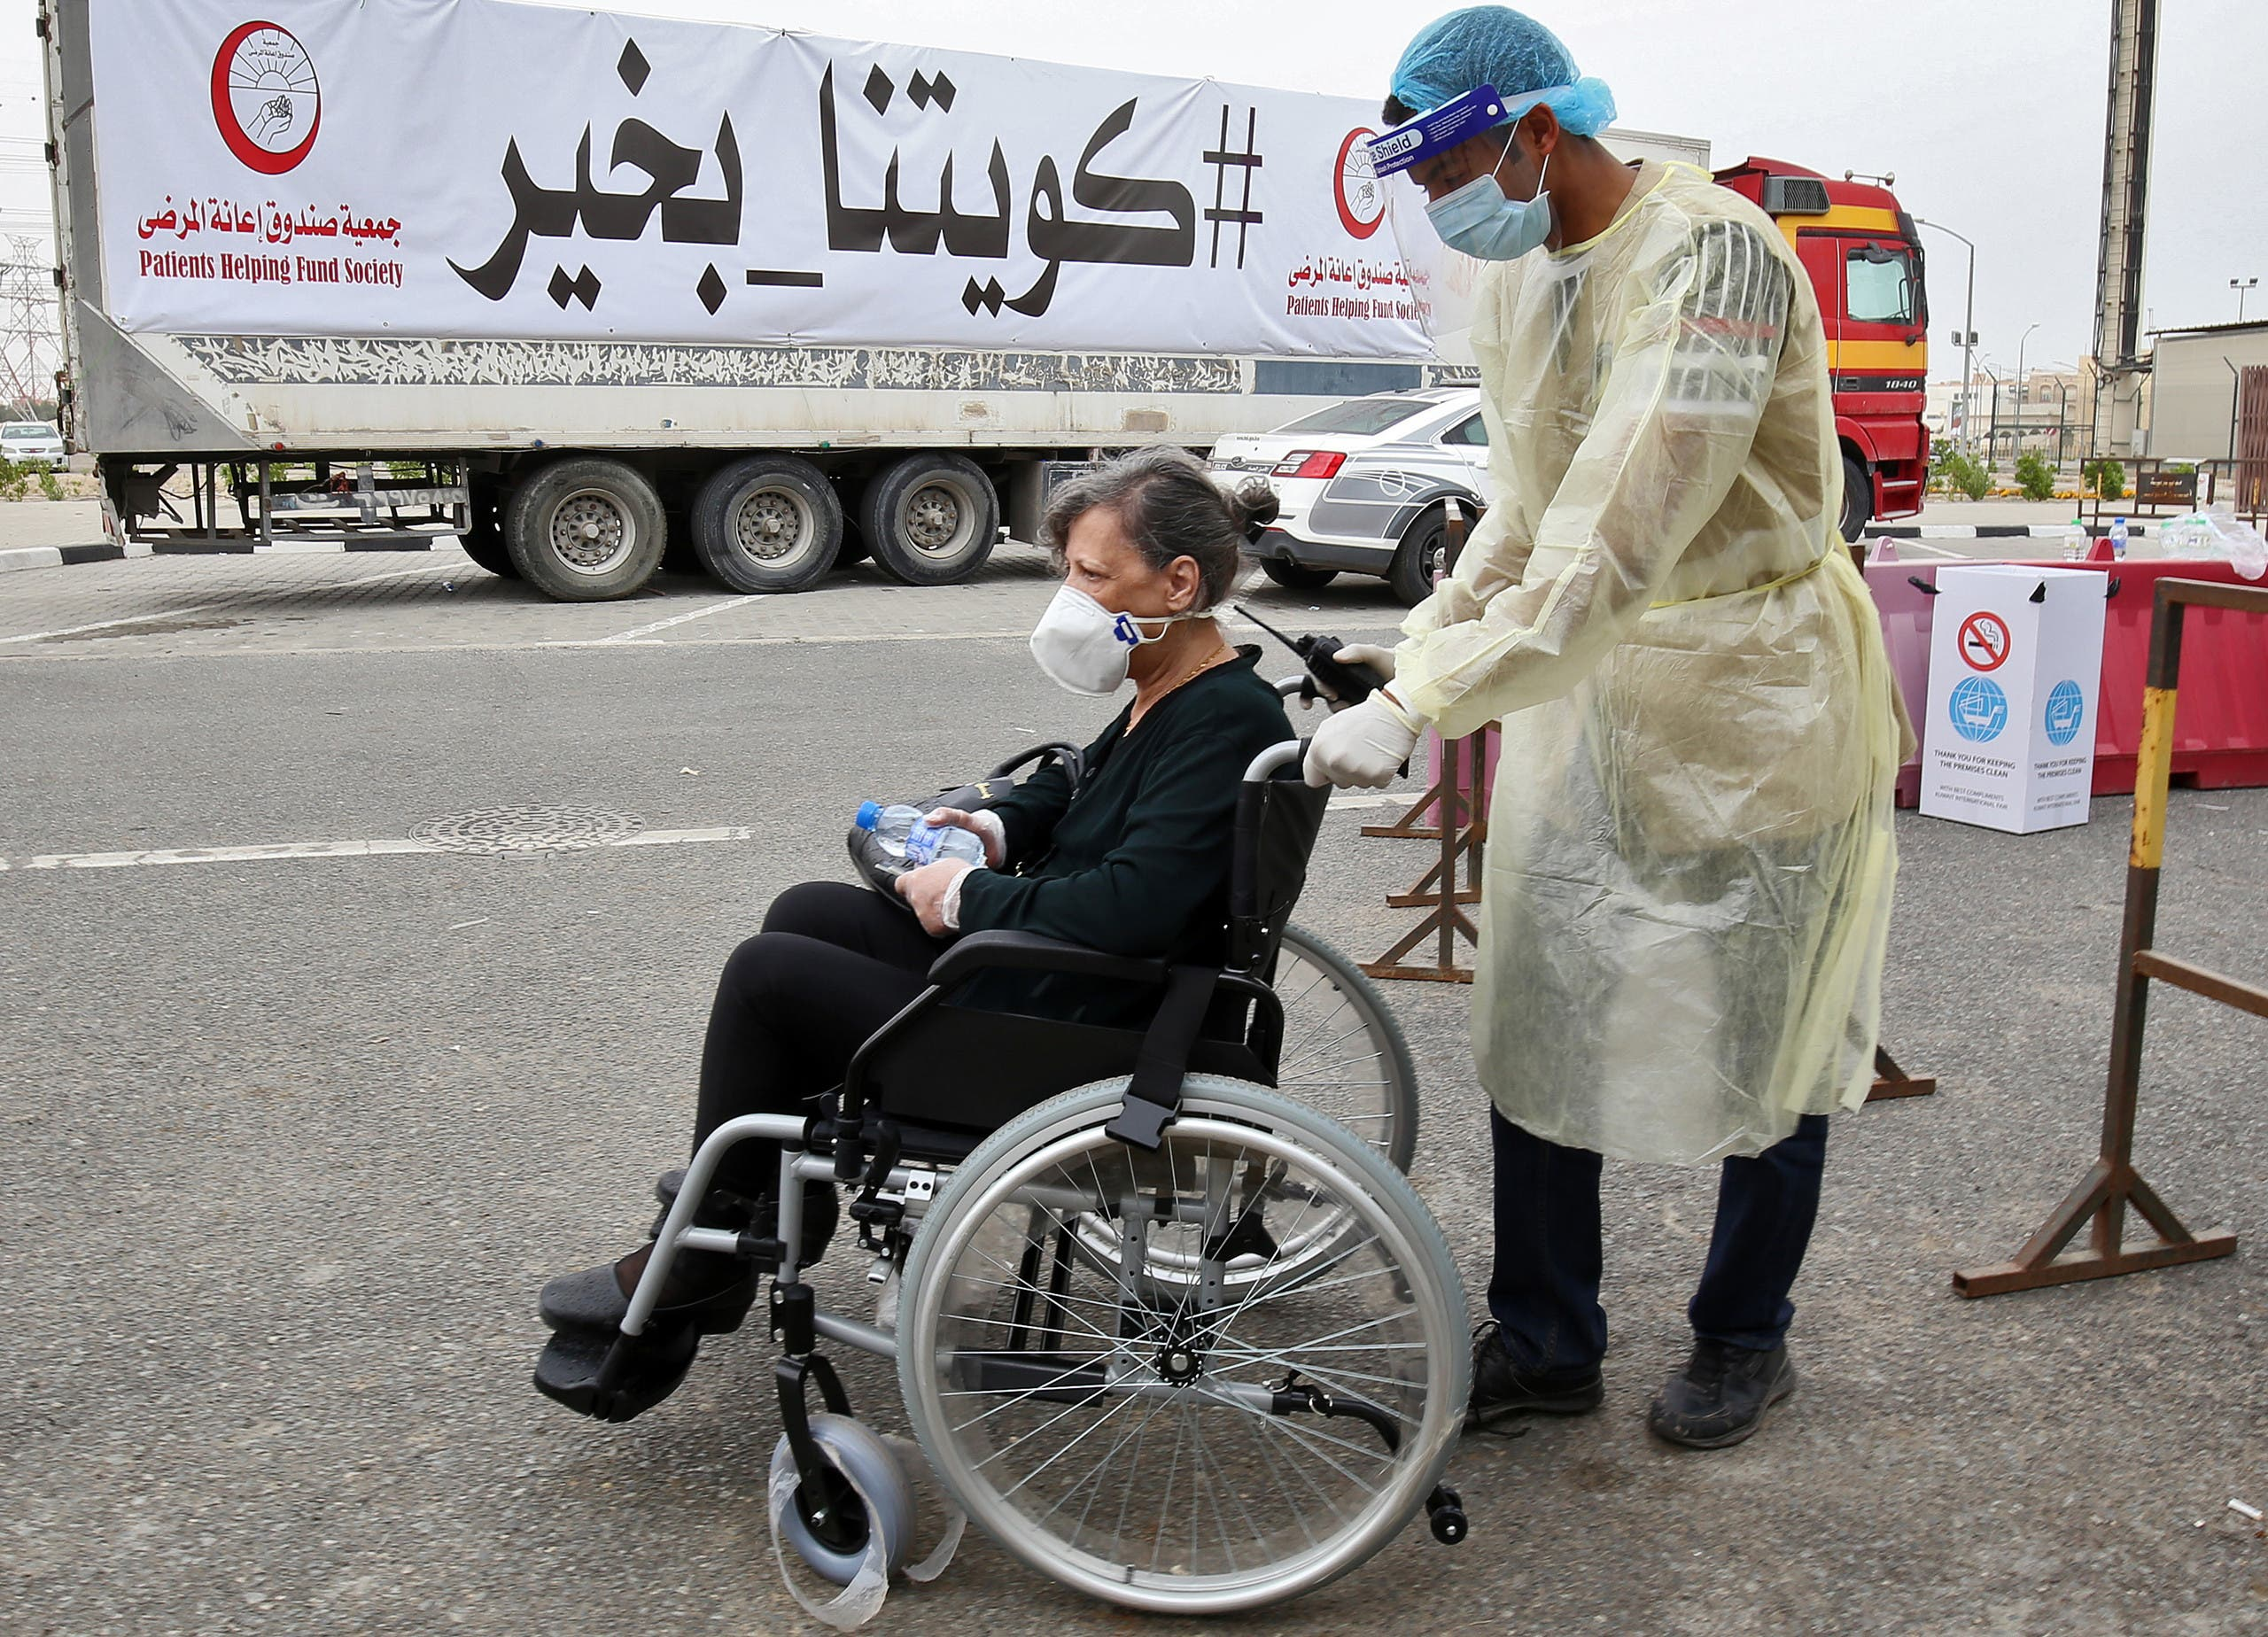 A woman is pushed on a wheelchair as she arrives at a Kuwaiti health ministry containment and screening zone for coronavirus disease for expatriates returning from Egypt, Syria, and Lebanon, in Kuwait City on March 15, 2020. (AFP)